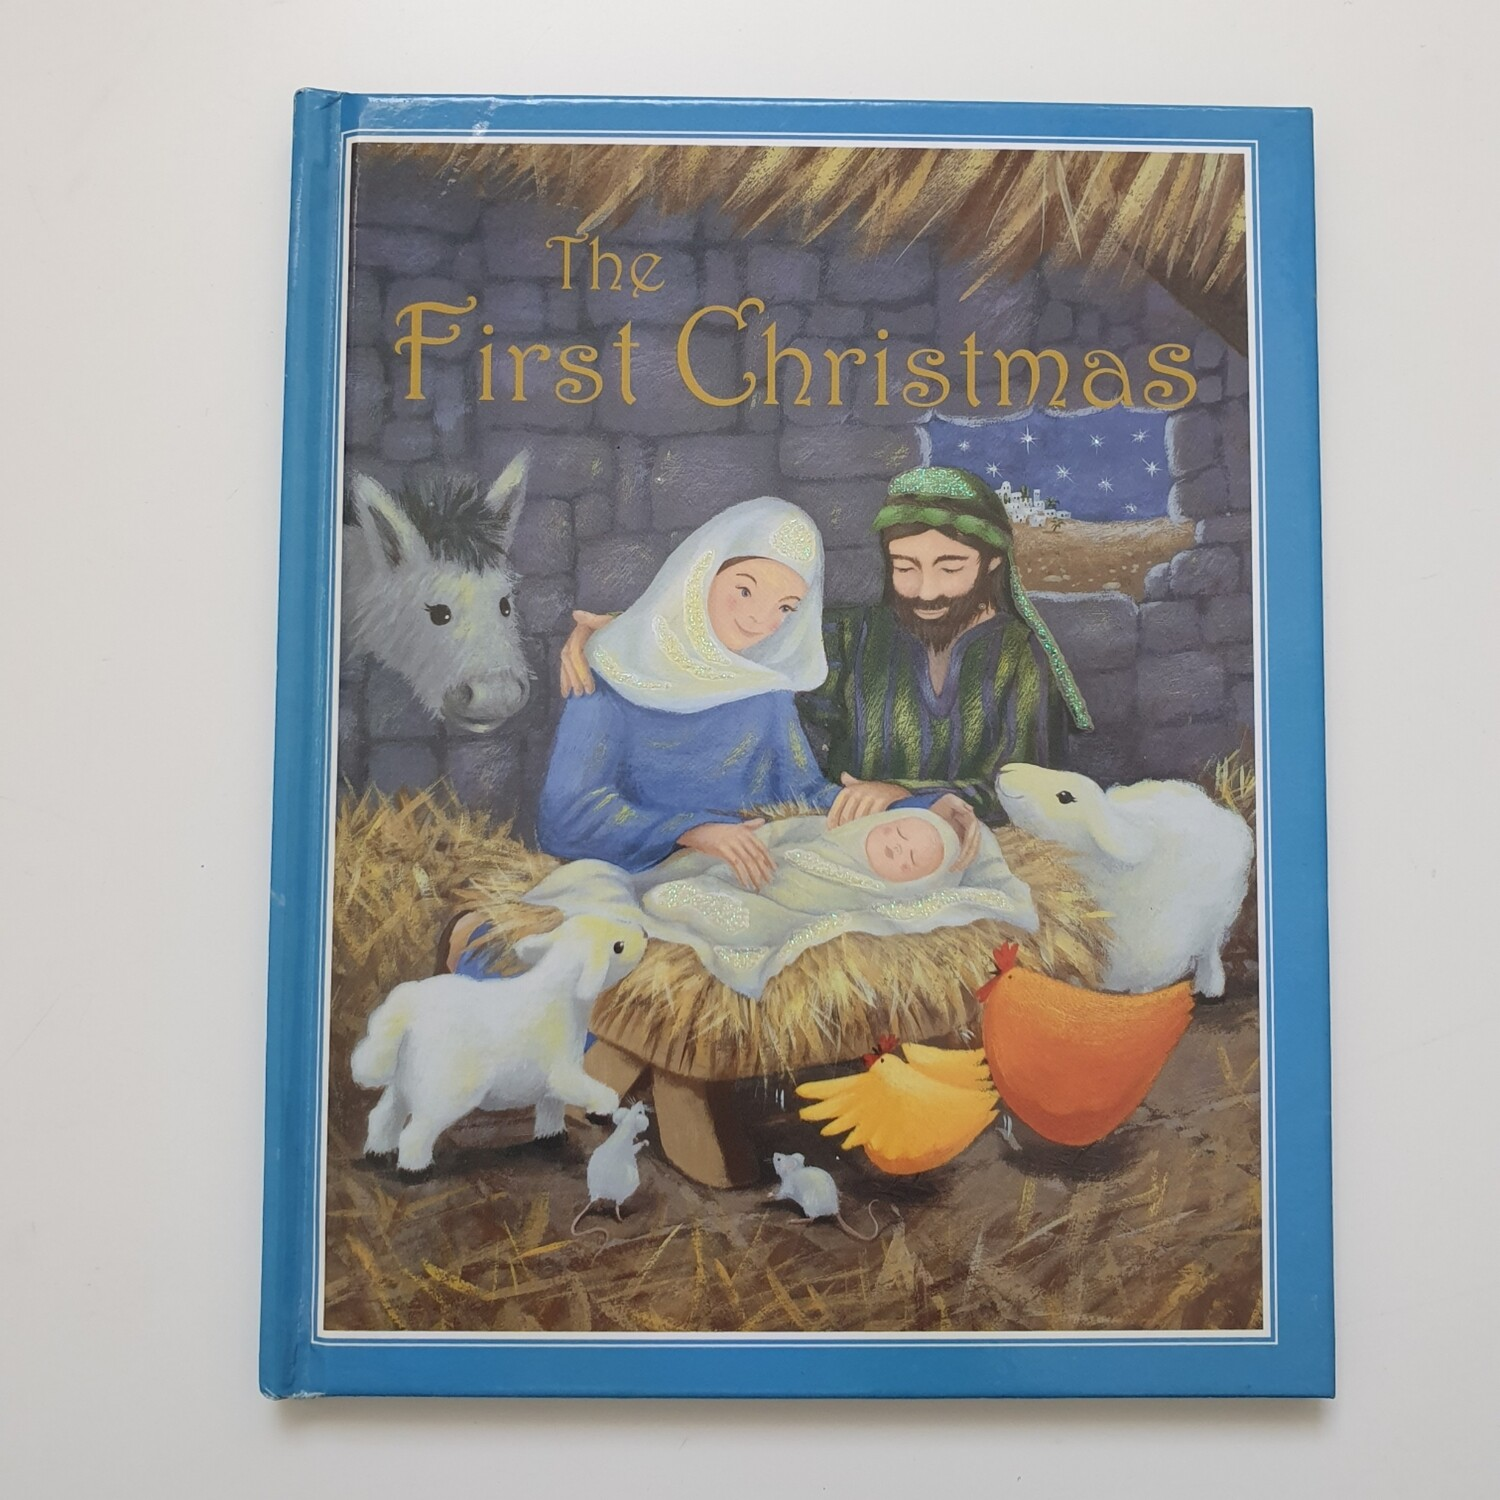 The First Christmas - Glitter Cover